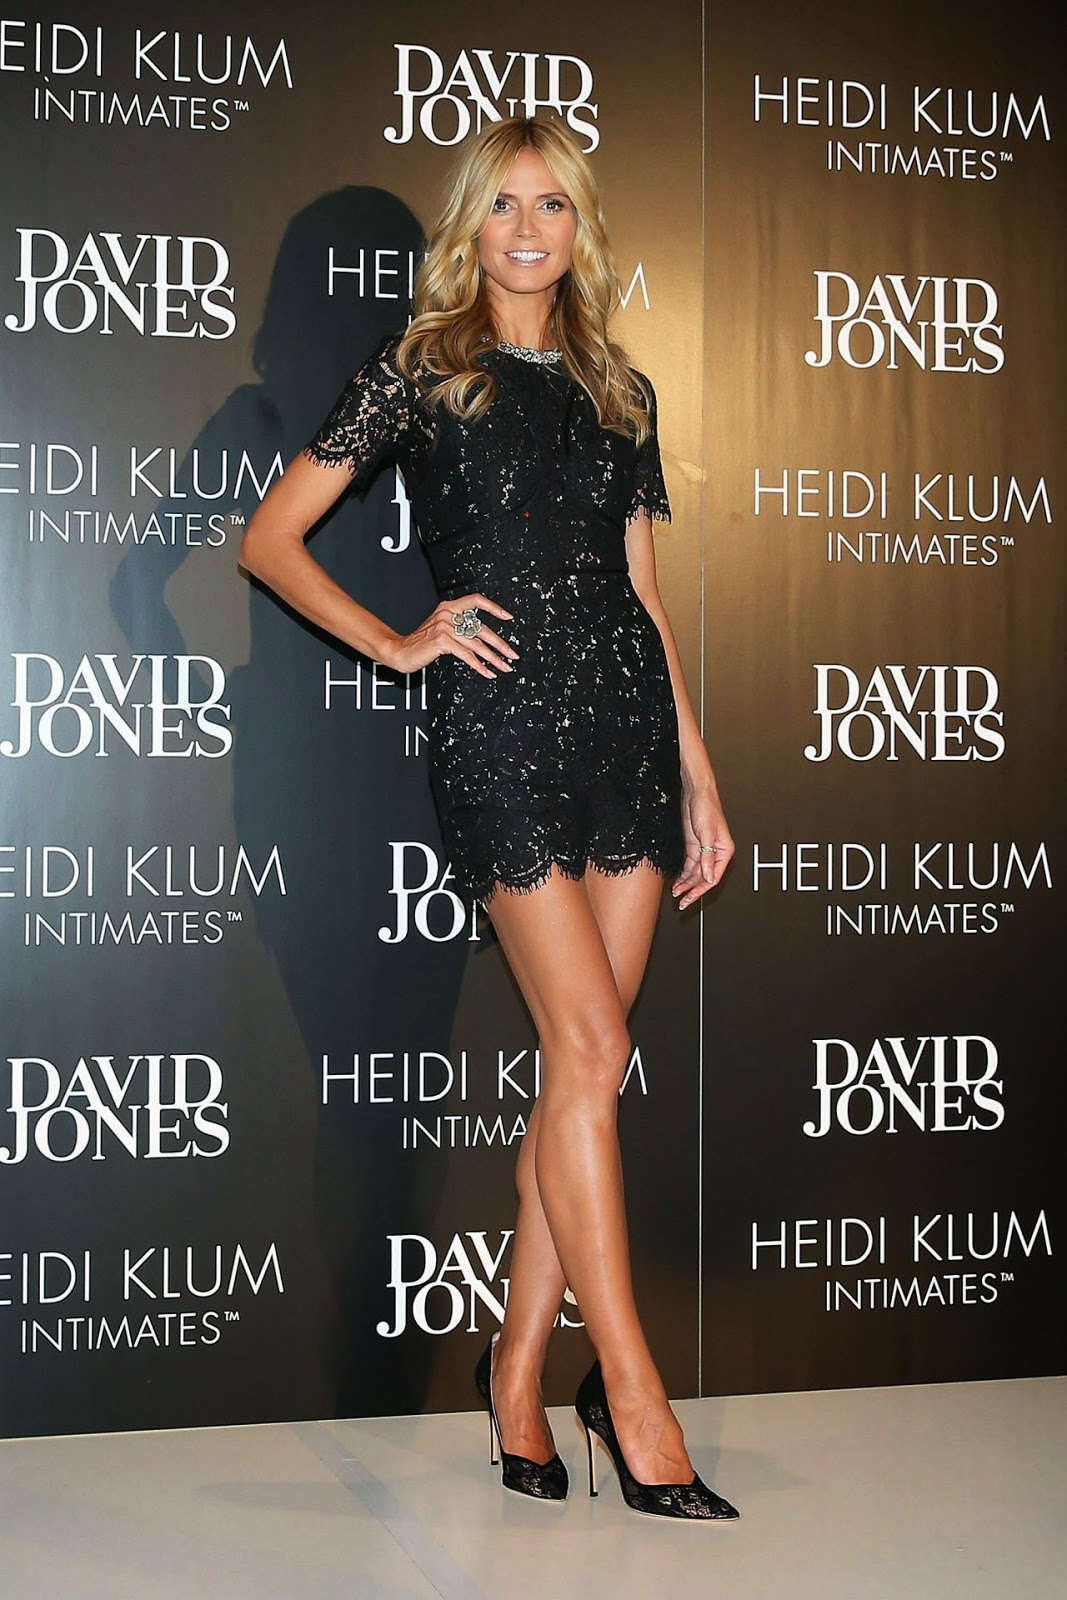 Heidi Klum wears a lace mini dress at the launch of HK Intimates in Sydney